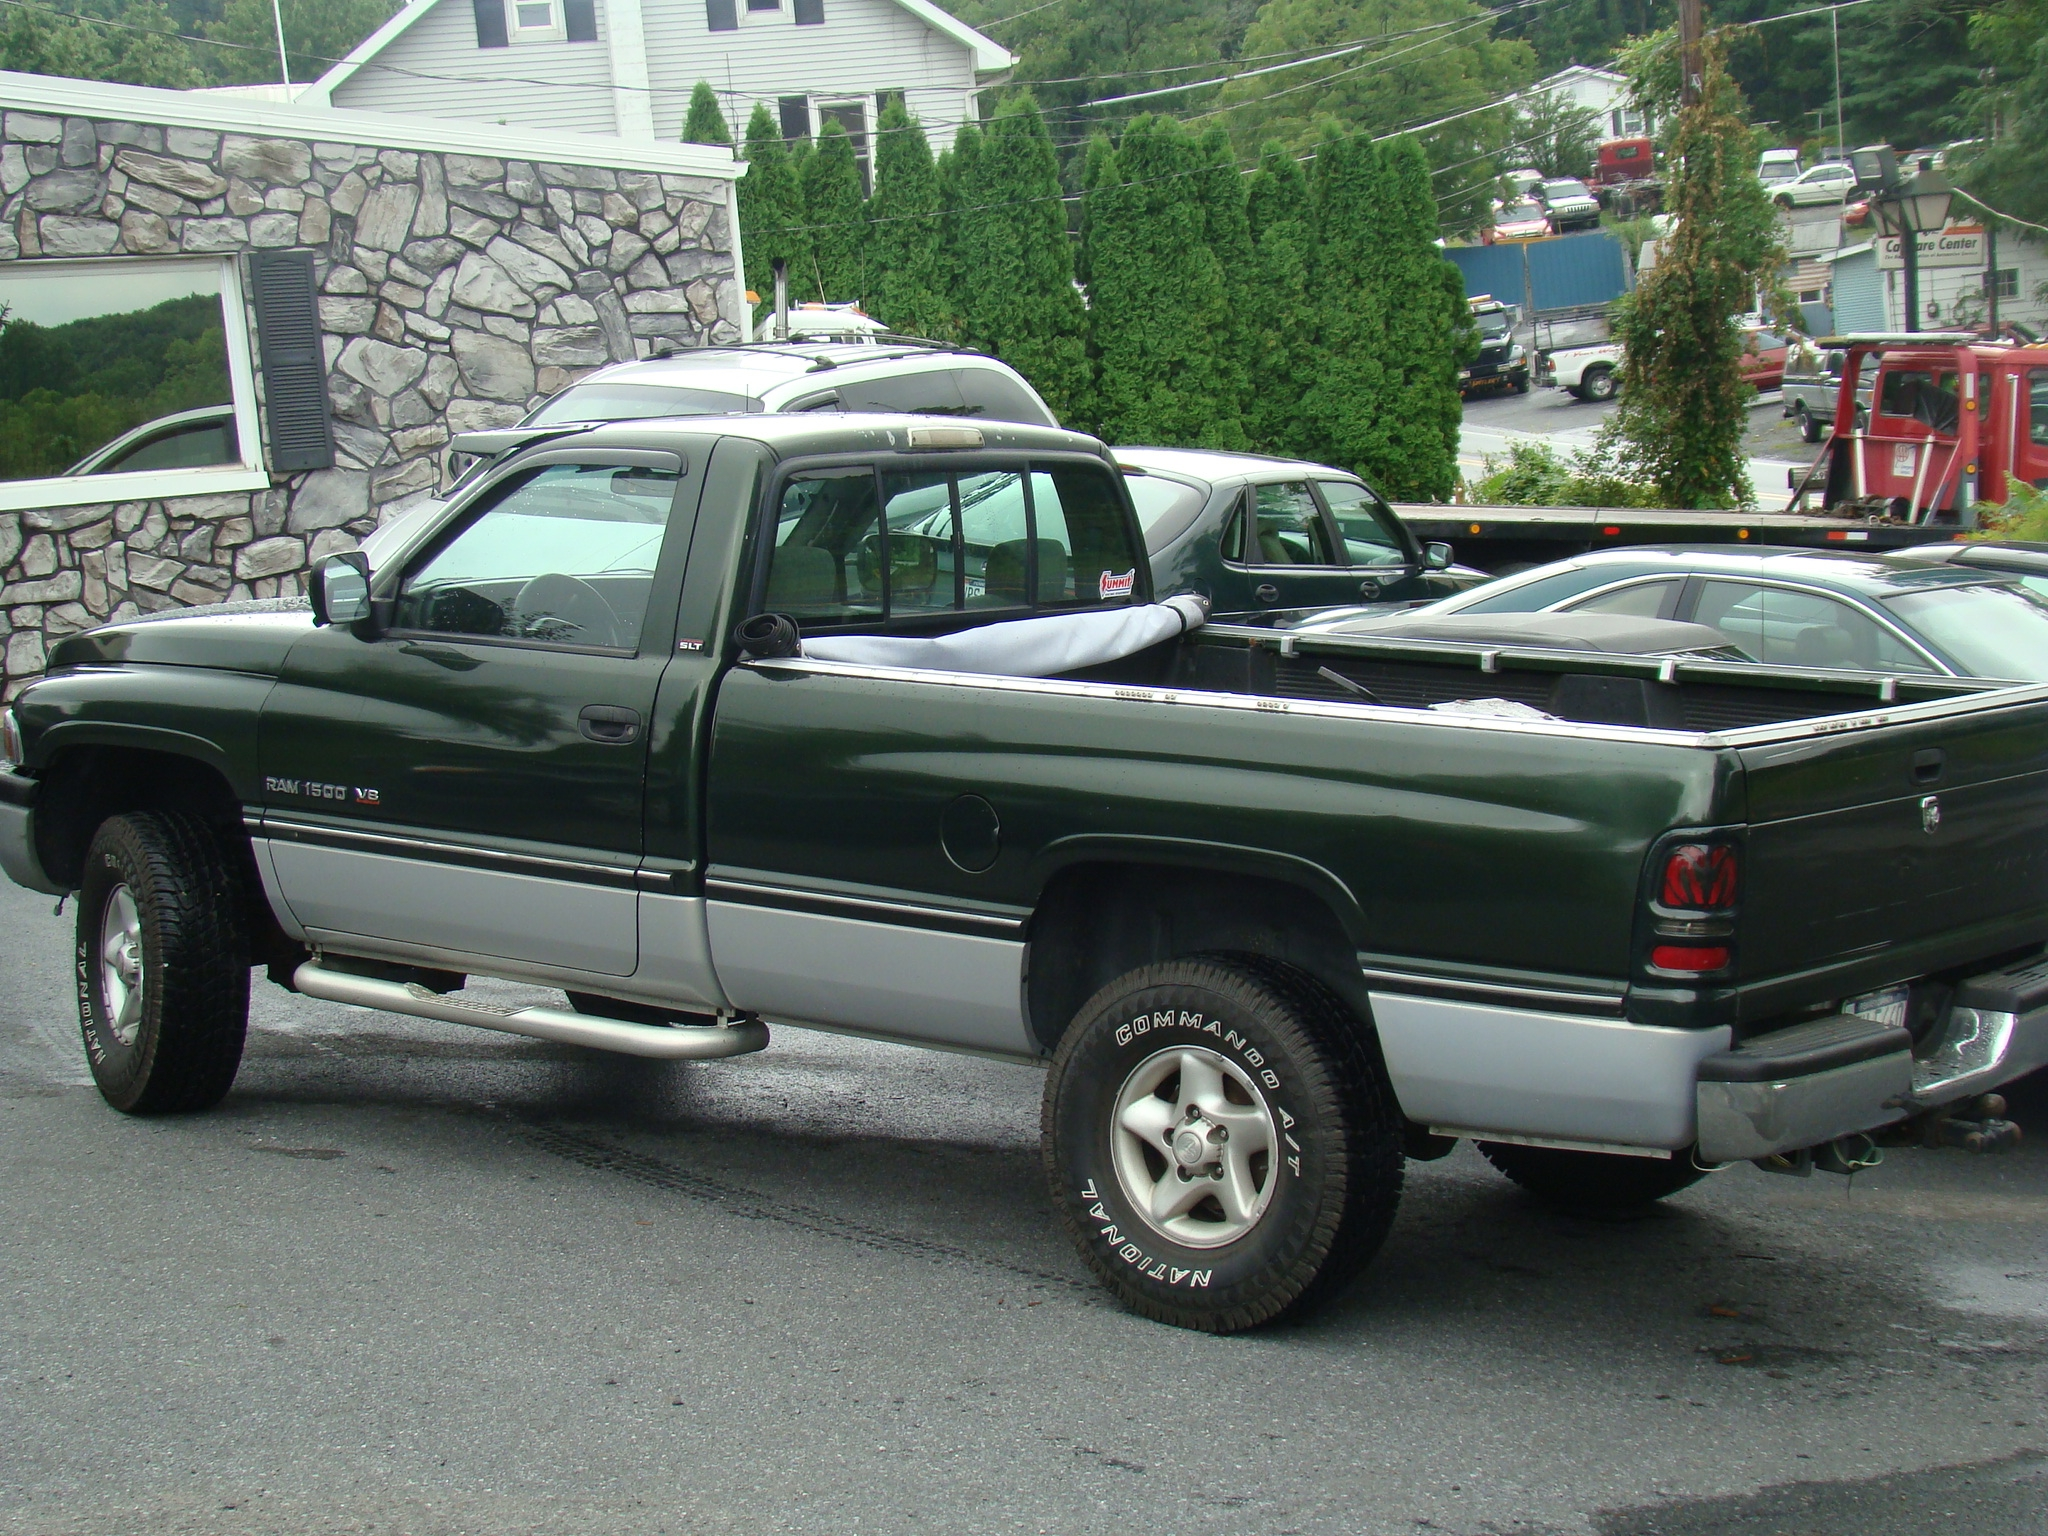 Original on 1997 Dodge Ram 2500